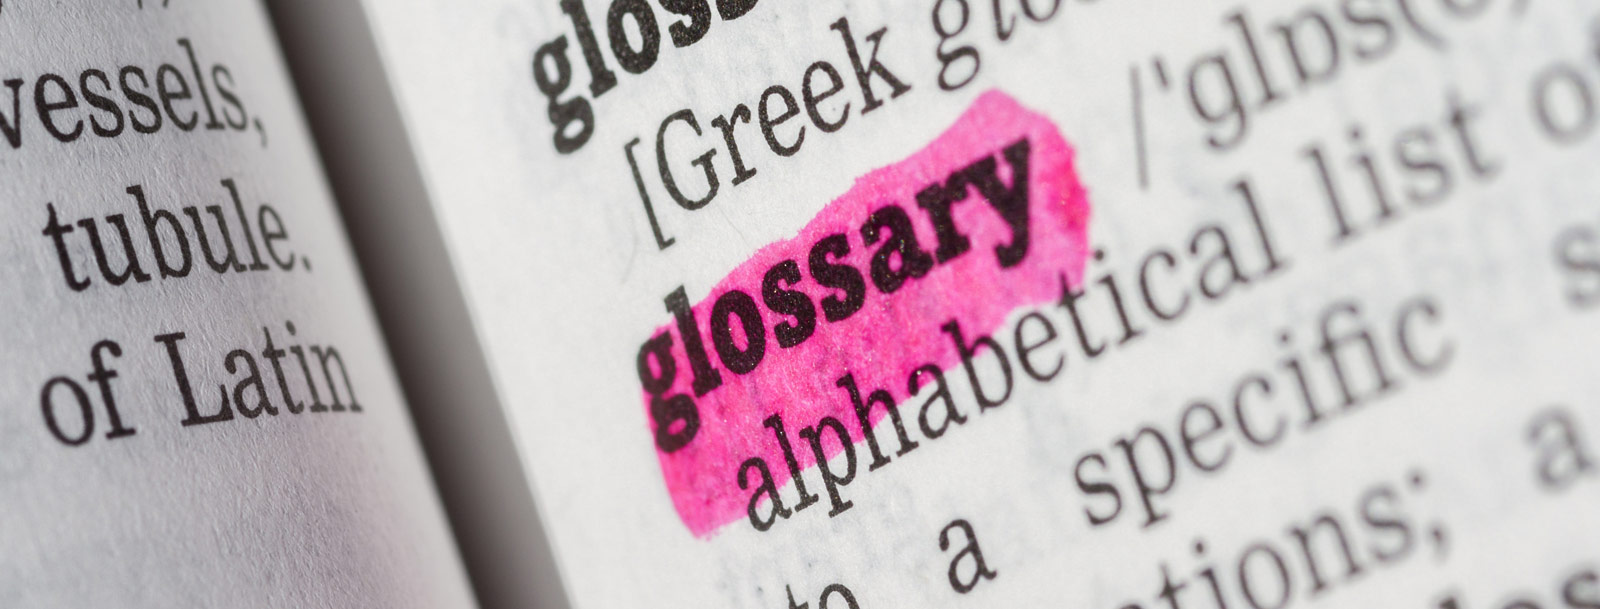 A glossary to help you understand the terminology at the senior living in Clay Center